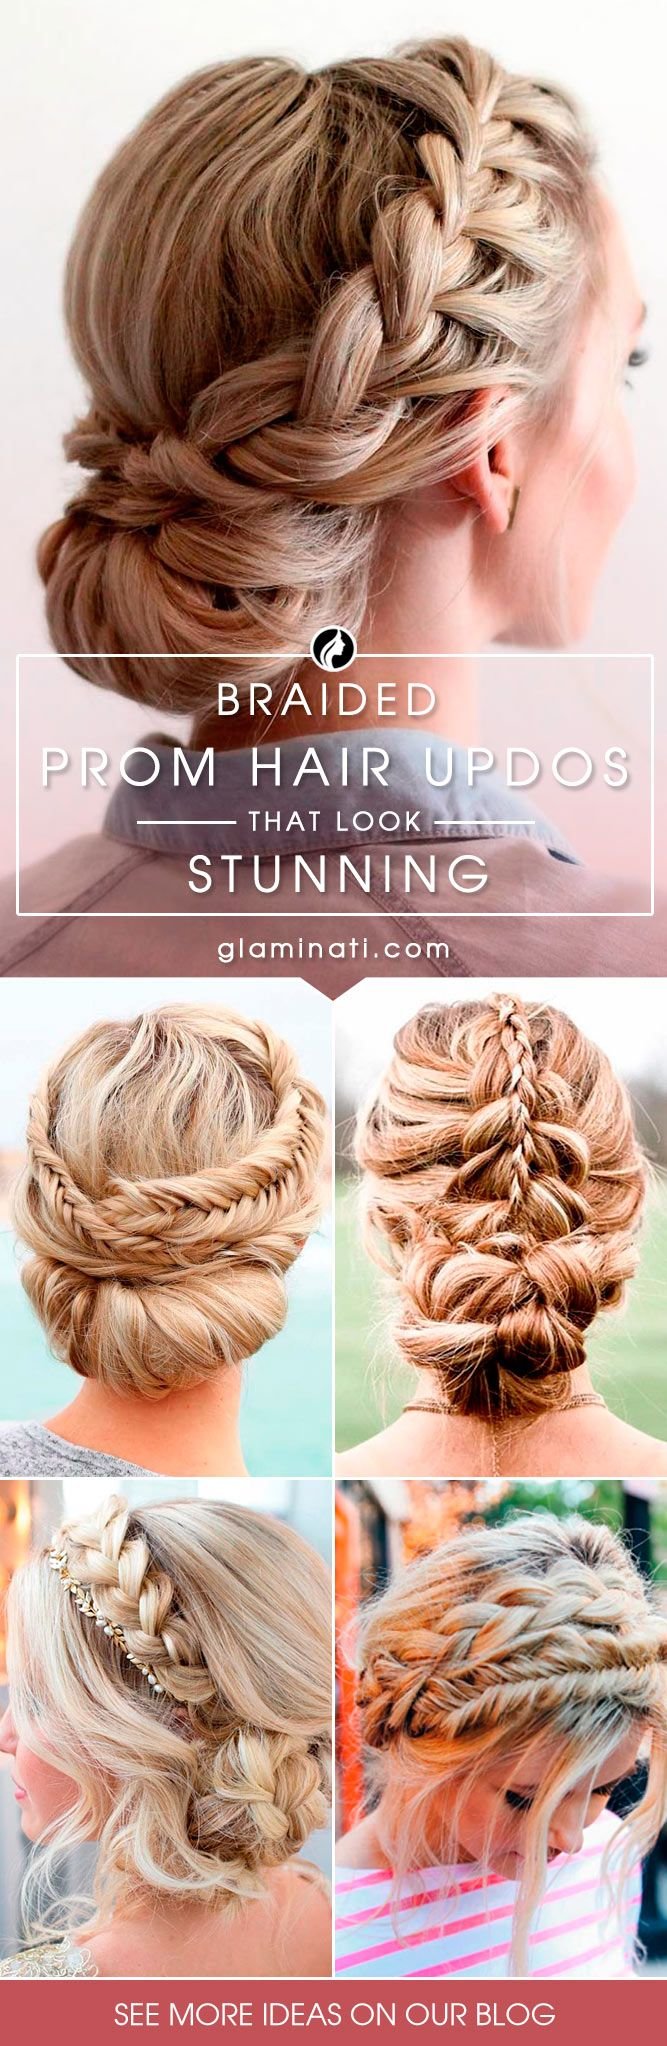 best 20+ prom hairstyles ideas on pinterest | hair styles for prom